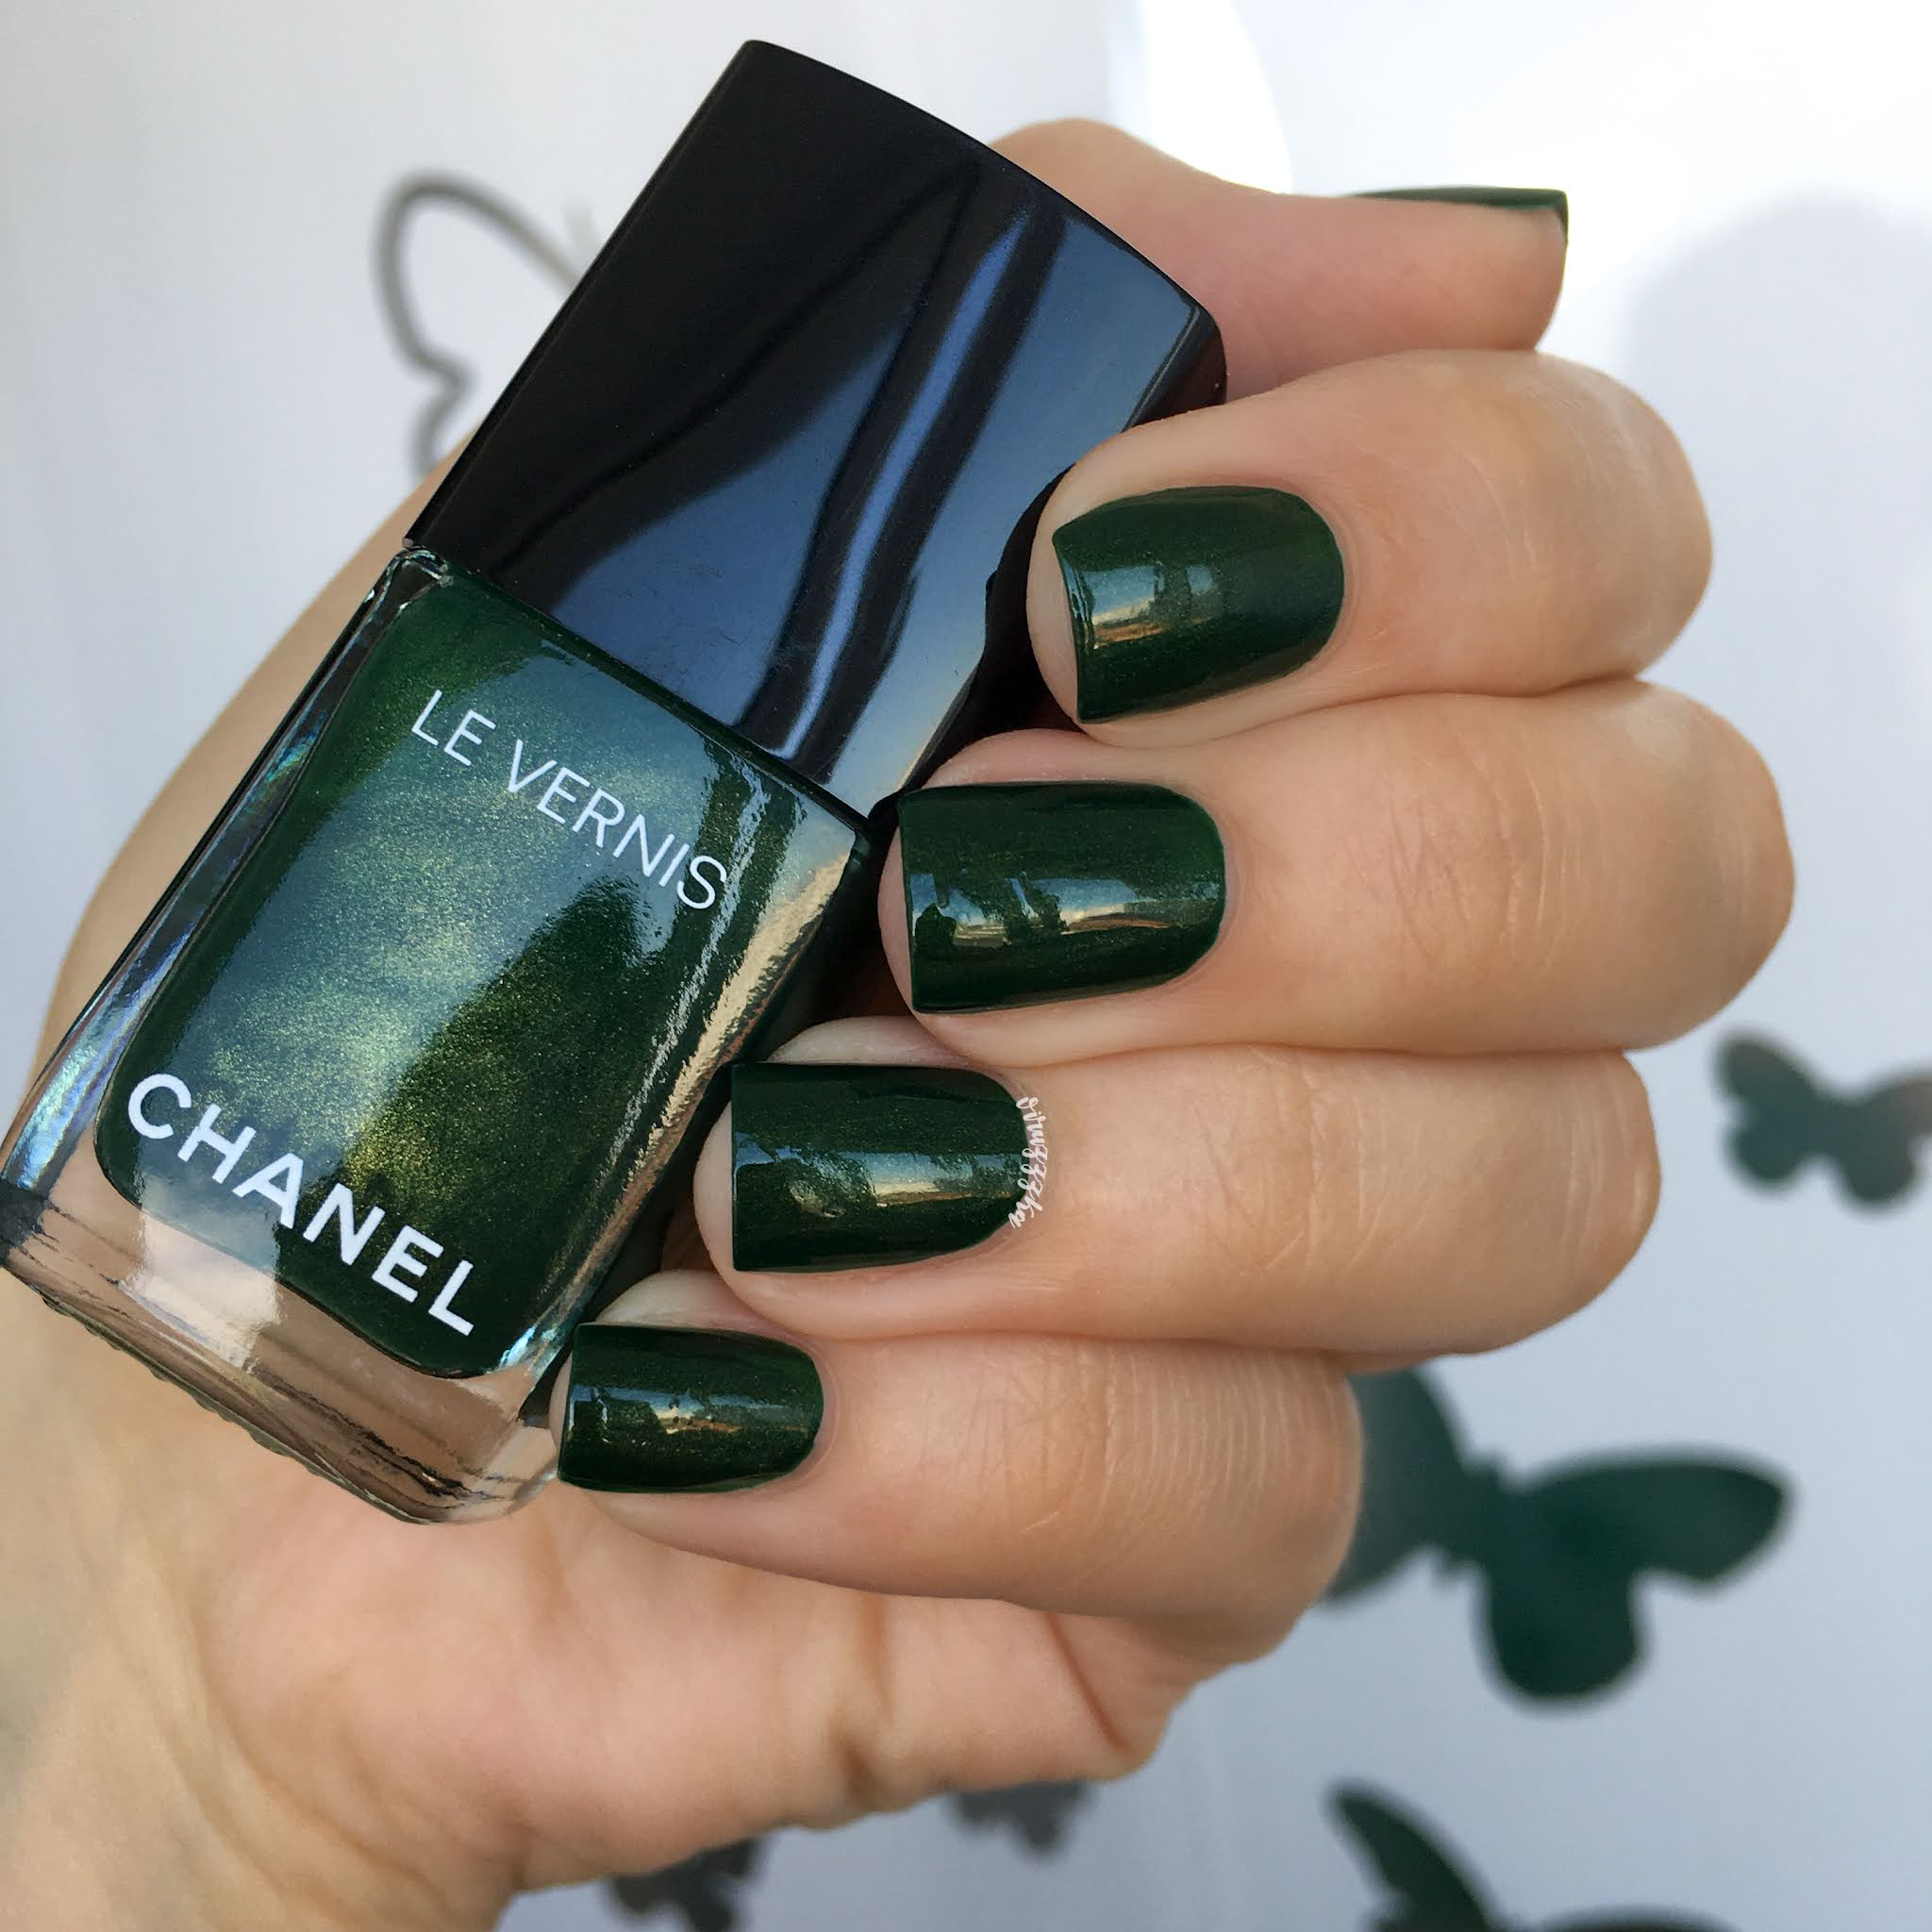 Chanel Emeraude 536 Nail Polish Swatch Autumn Nails Green Manicure Review